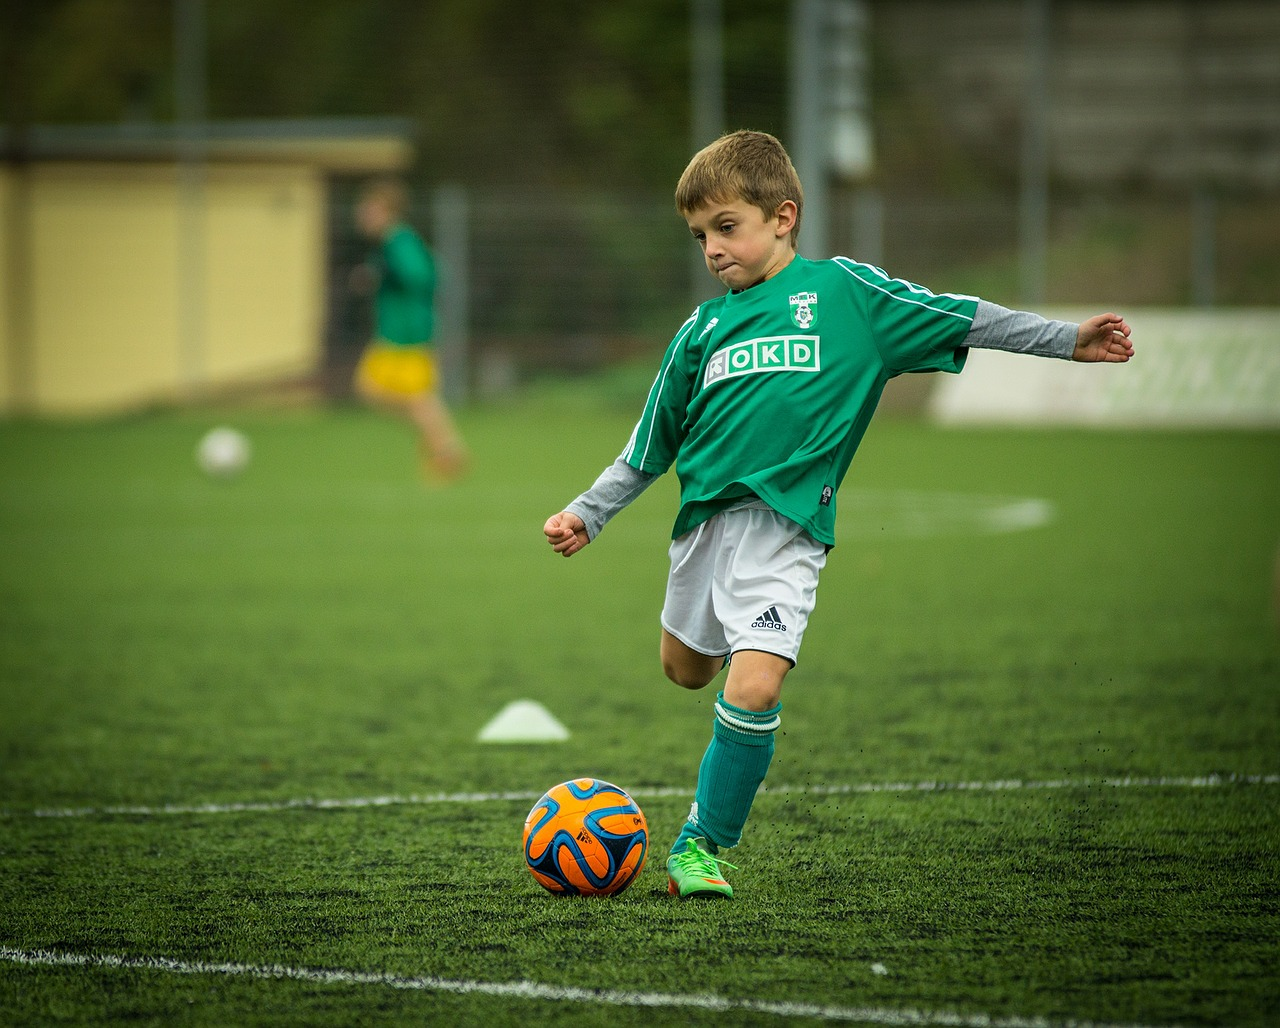 Tips and Ideas to Become A Professional Soccer Player